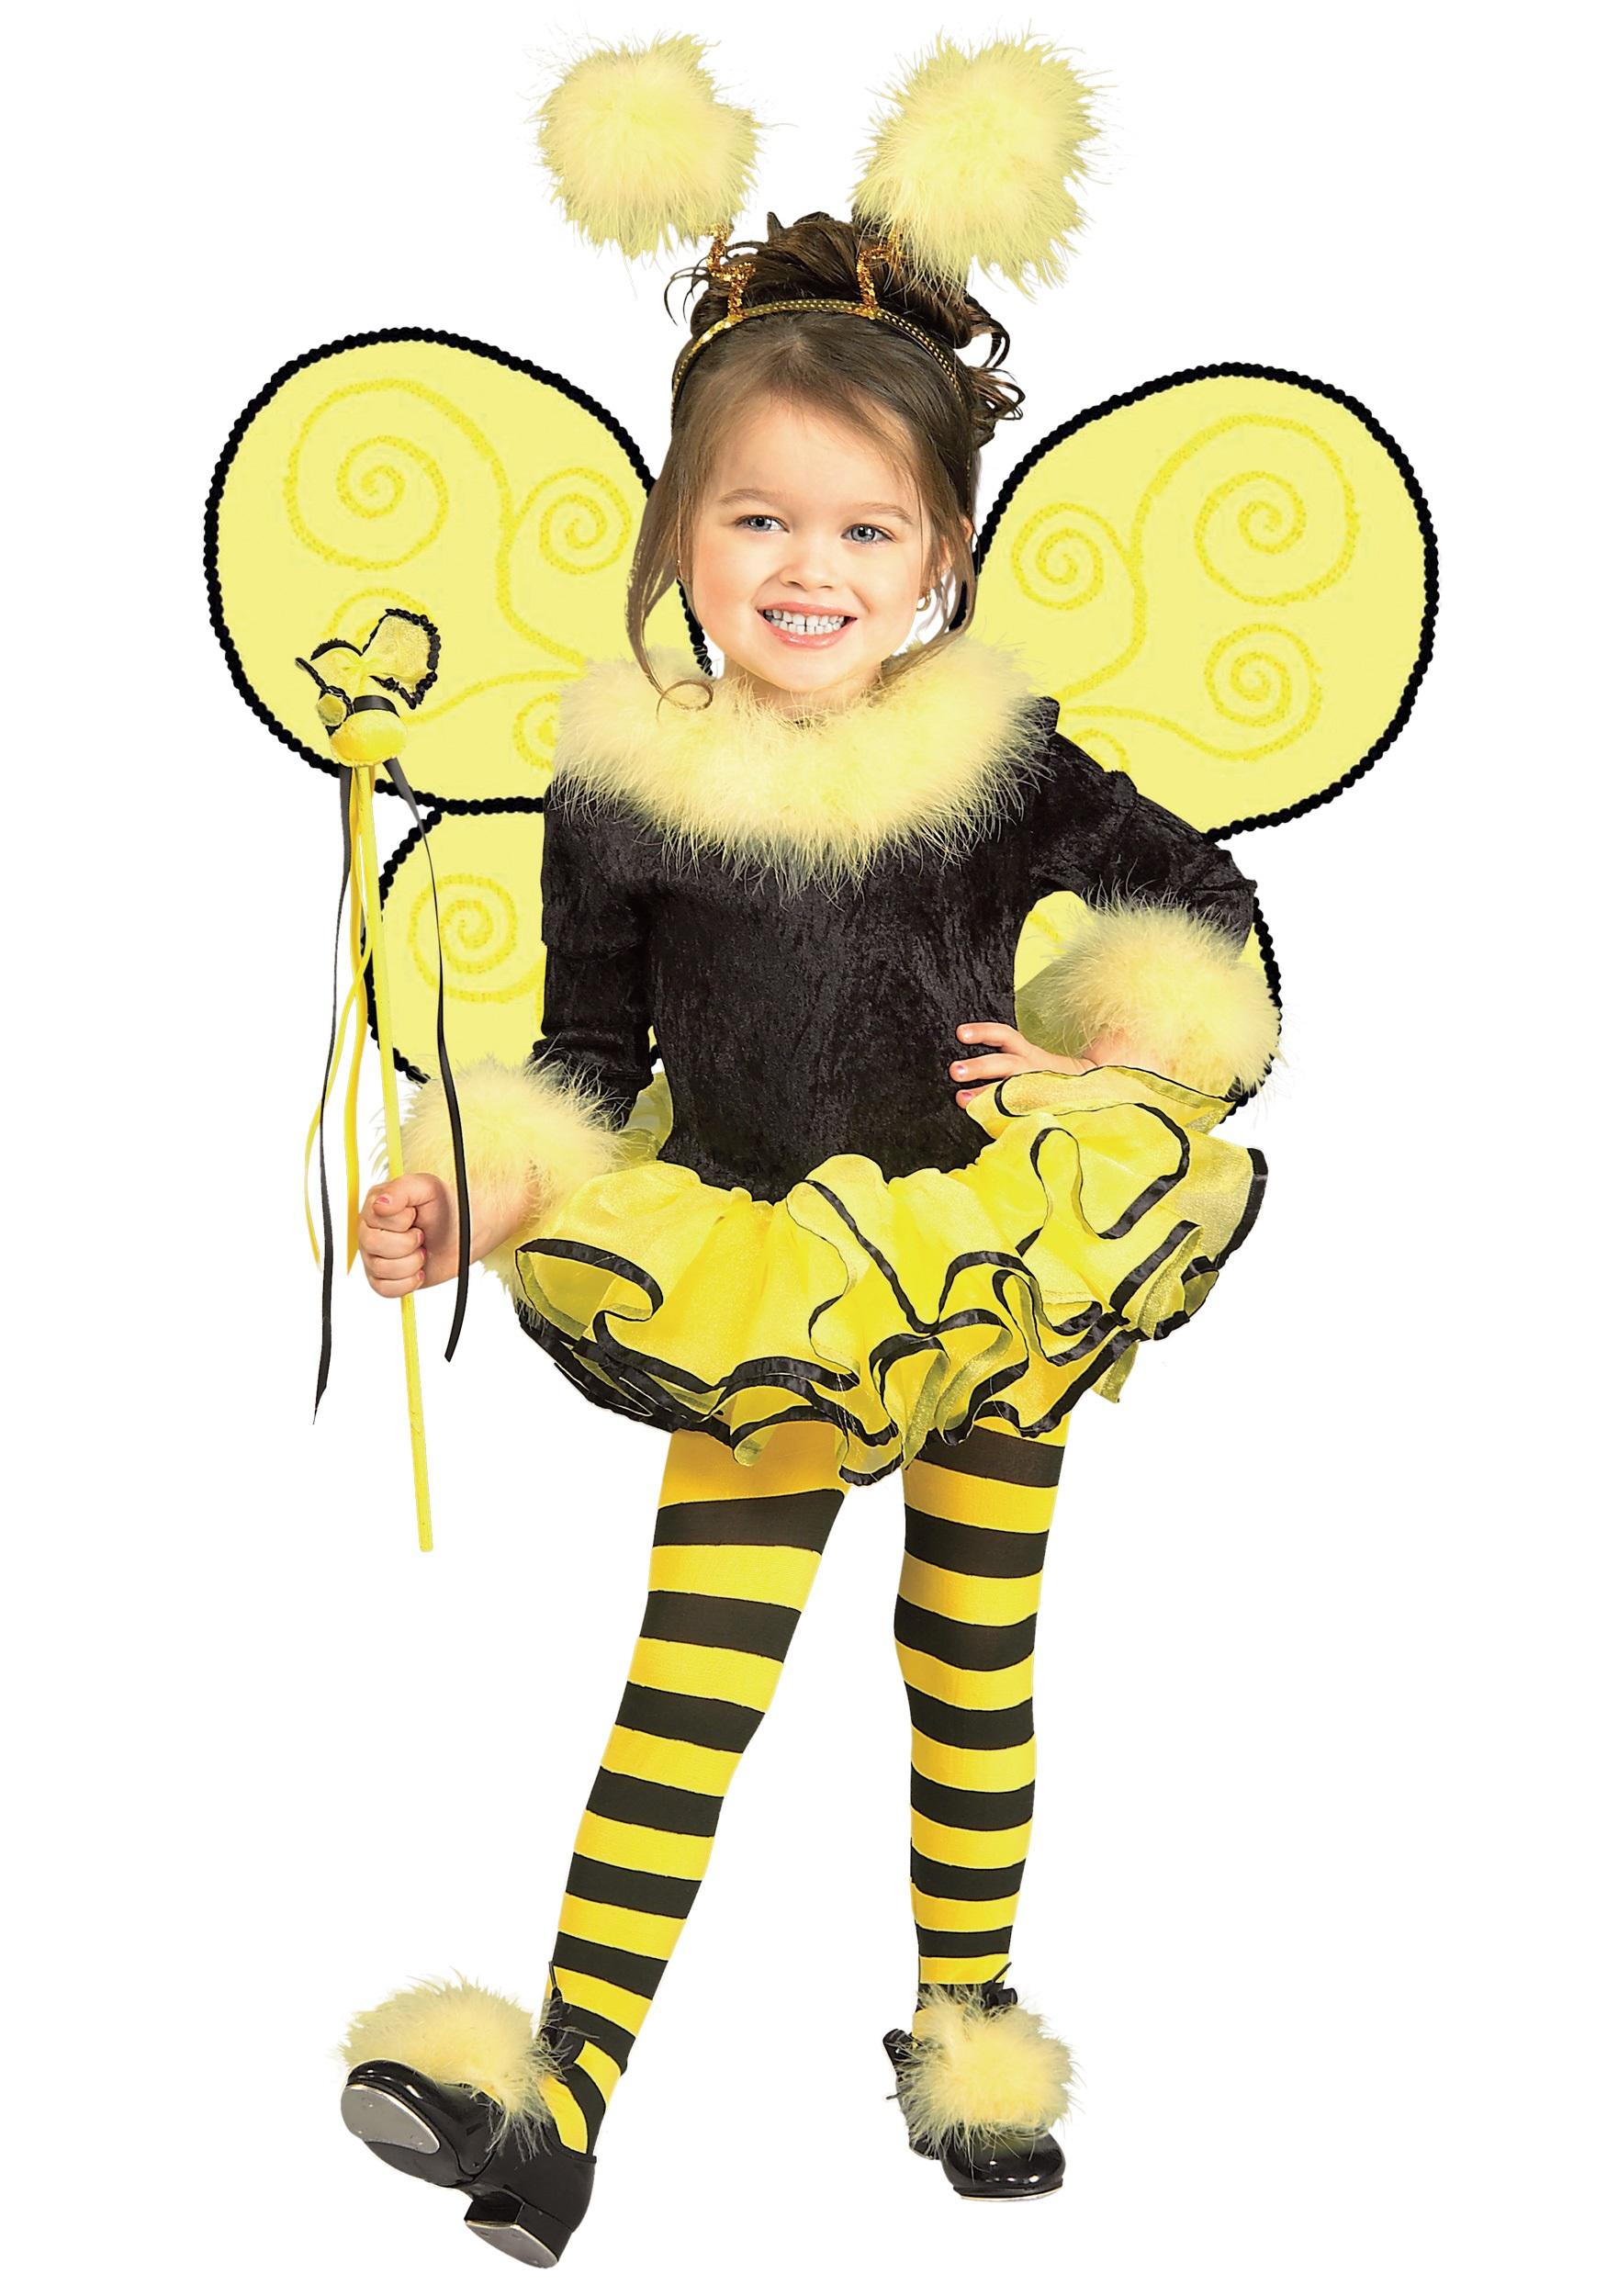 Bumble bee costumes honey bee costumes halloweencostumes toddler bumble bee costume solutioingenieria Choice Image